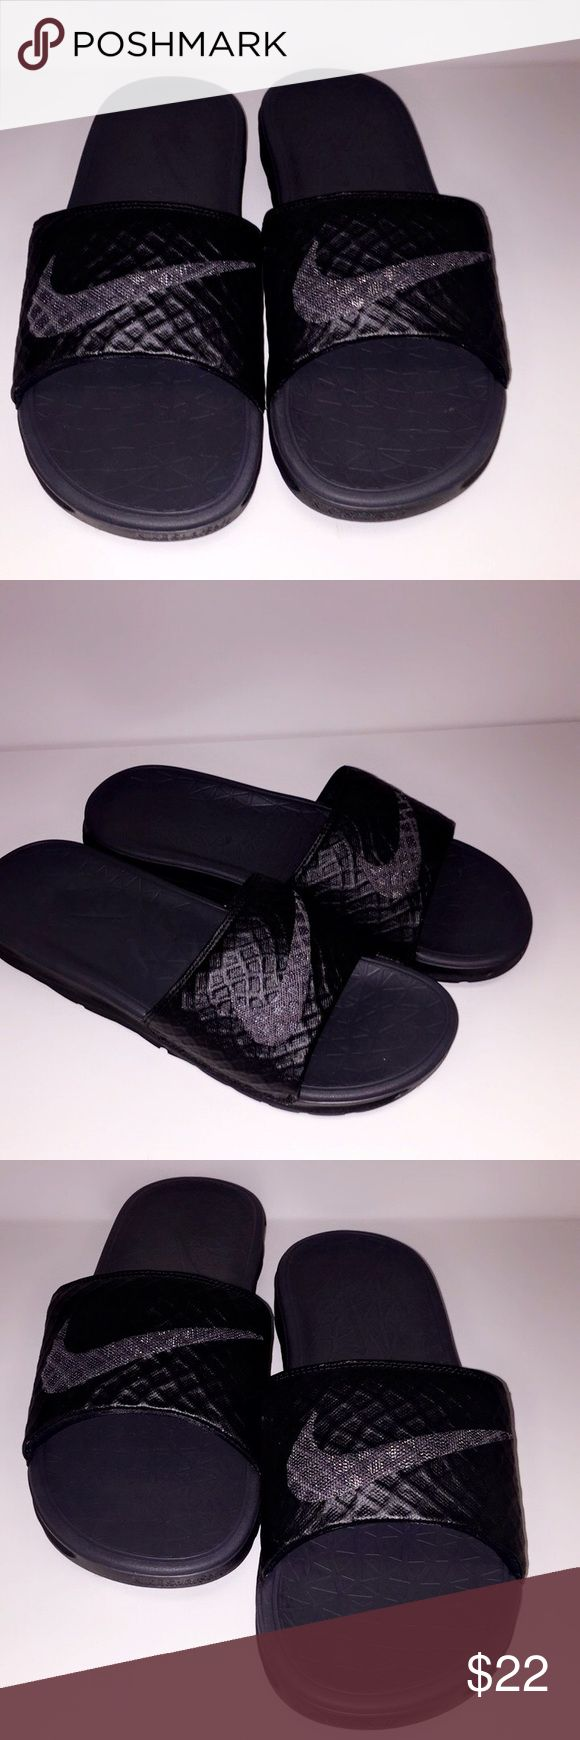 Men's Nike Benassi JDI Solarsoft Slides Featuring a padded lining and grooved footbed for ventilation, these men's Nike sandals are perfect for post-game wear or relaxing on weekends. Nike Shoes Sandals & Flip-Flops